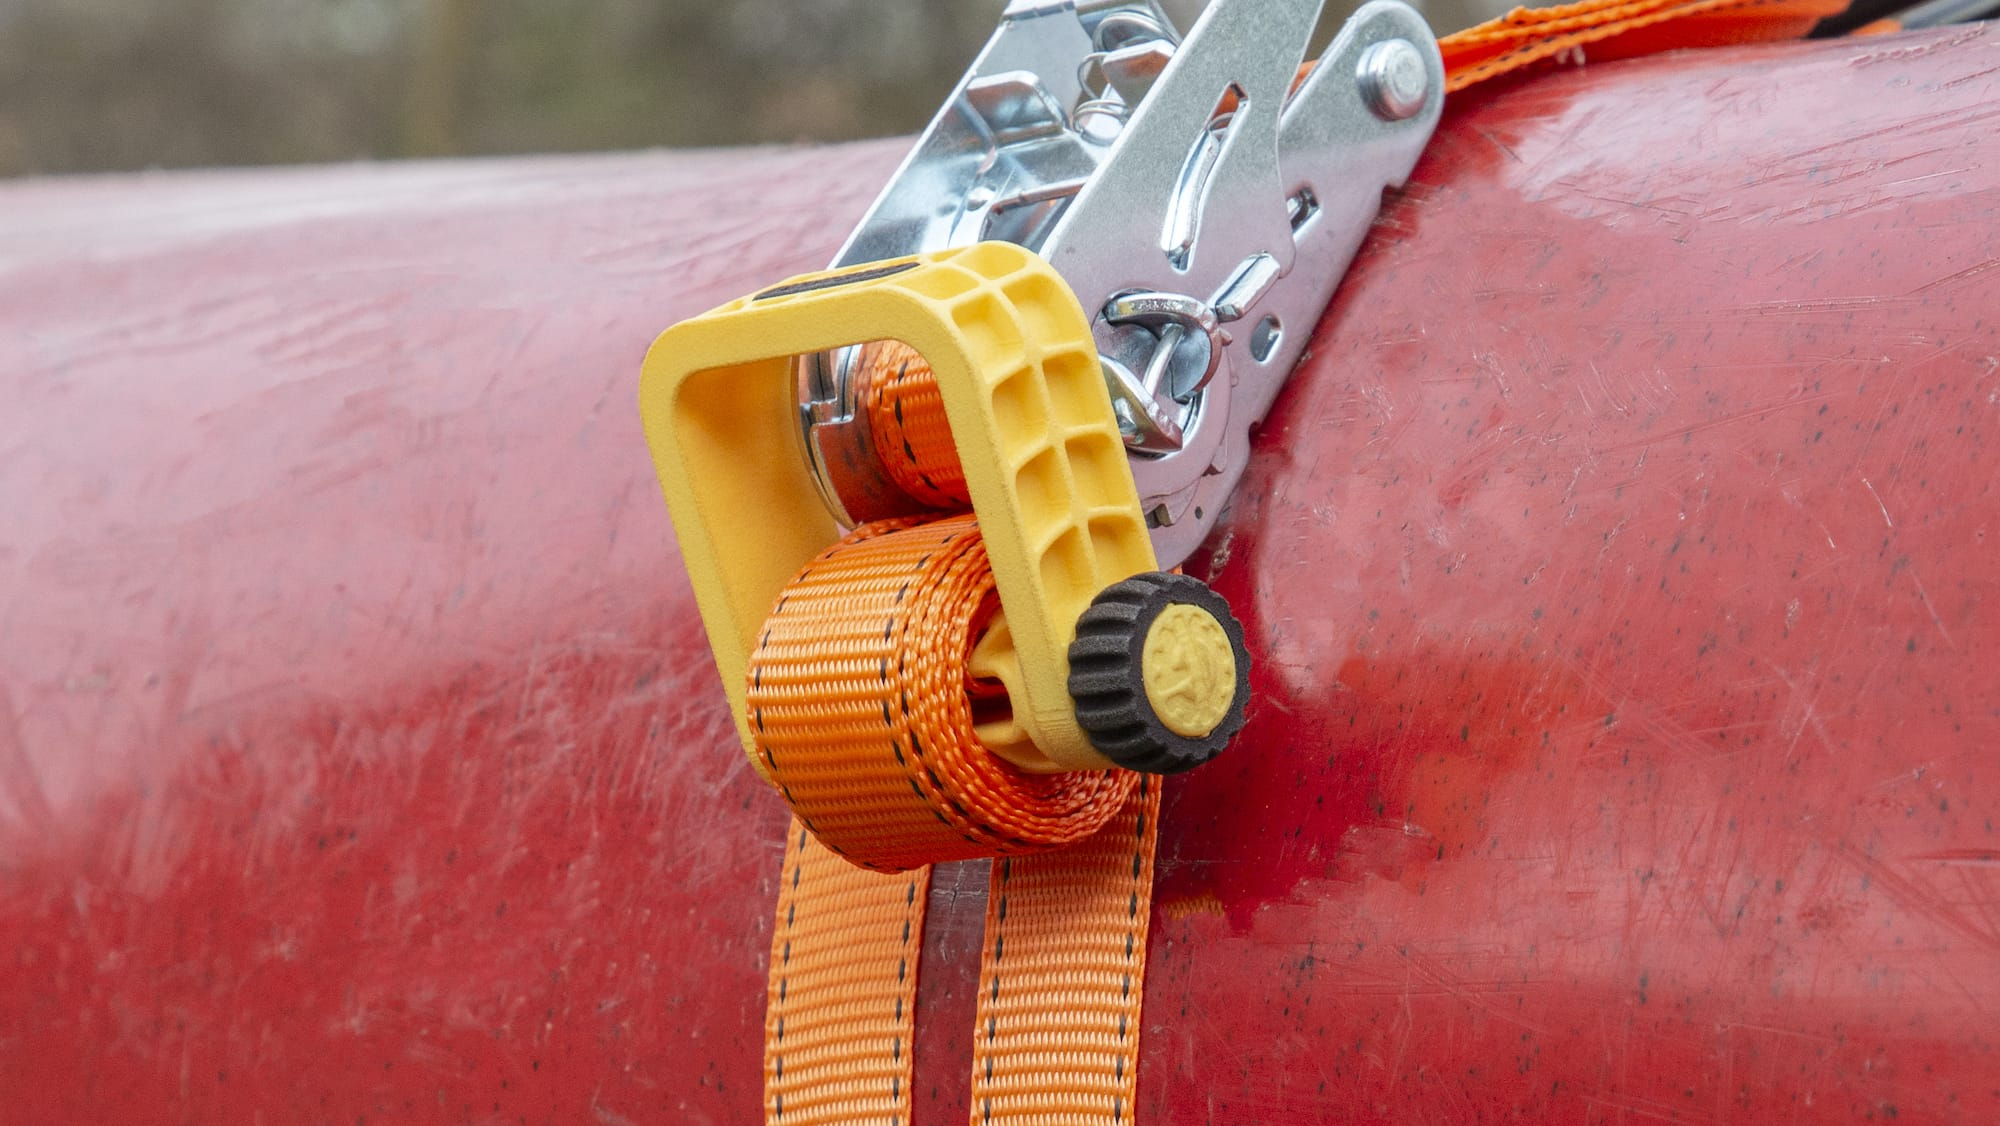 INDERGEAR Tidy Straps for tie-downs don't flap or make noise while you drive